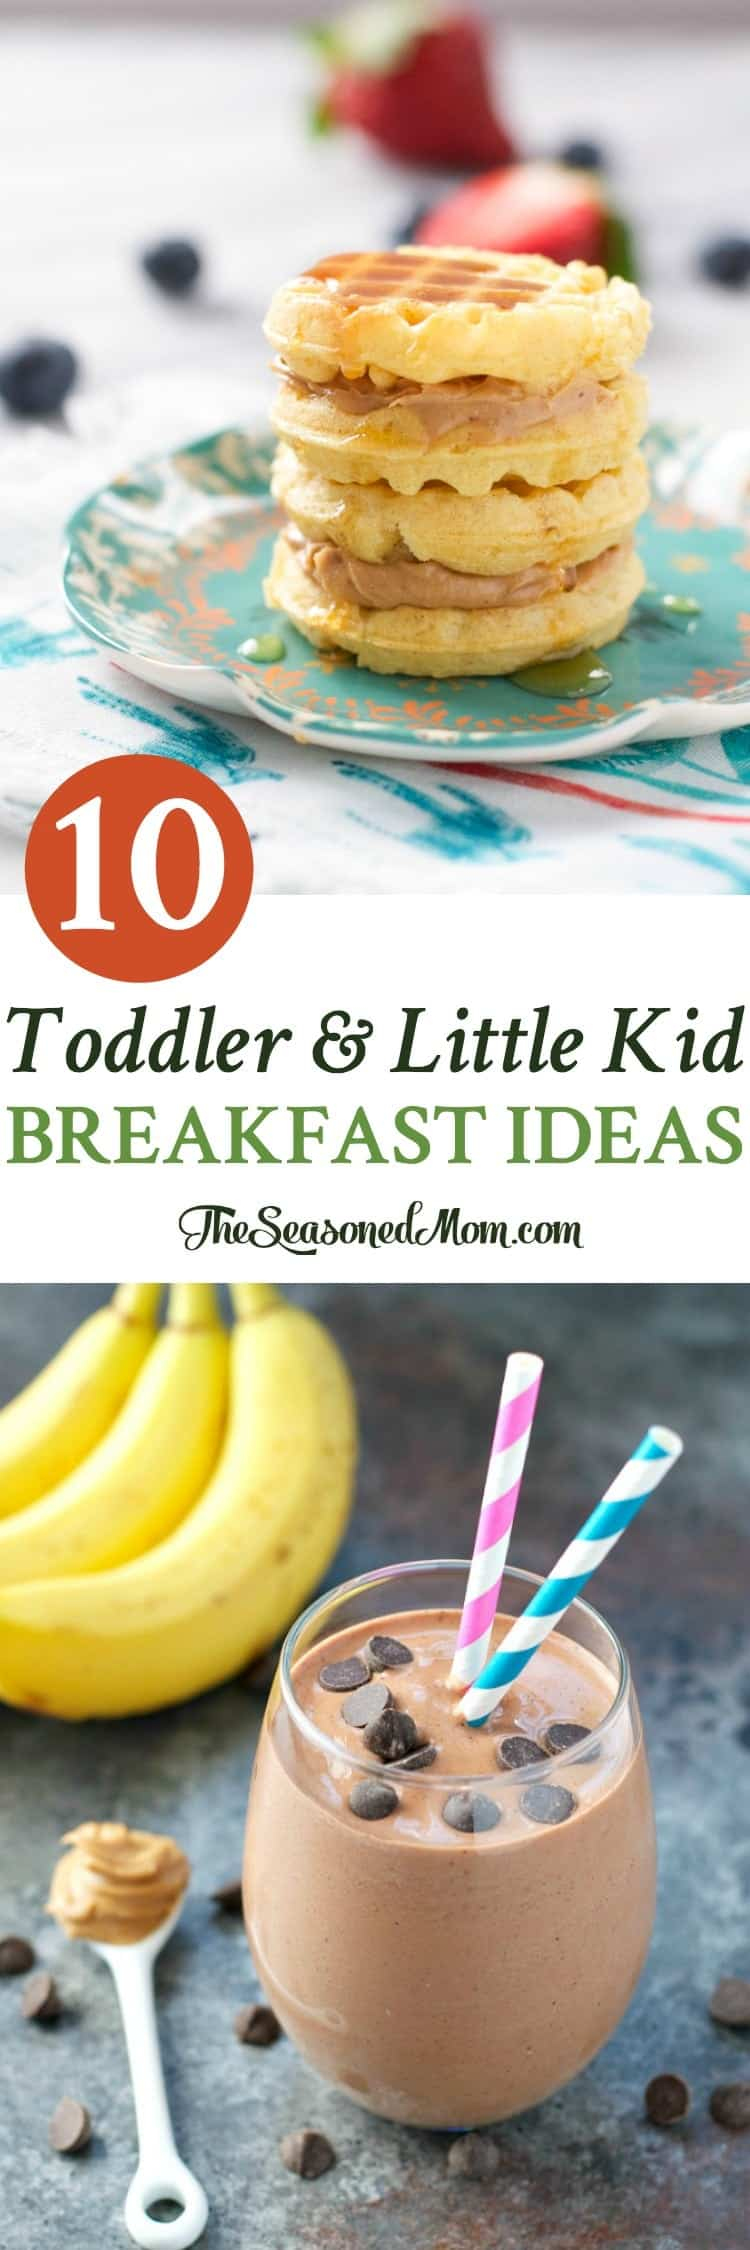 10 Toddler And Little Kid Breakfast Ideas The Seasoned Mom